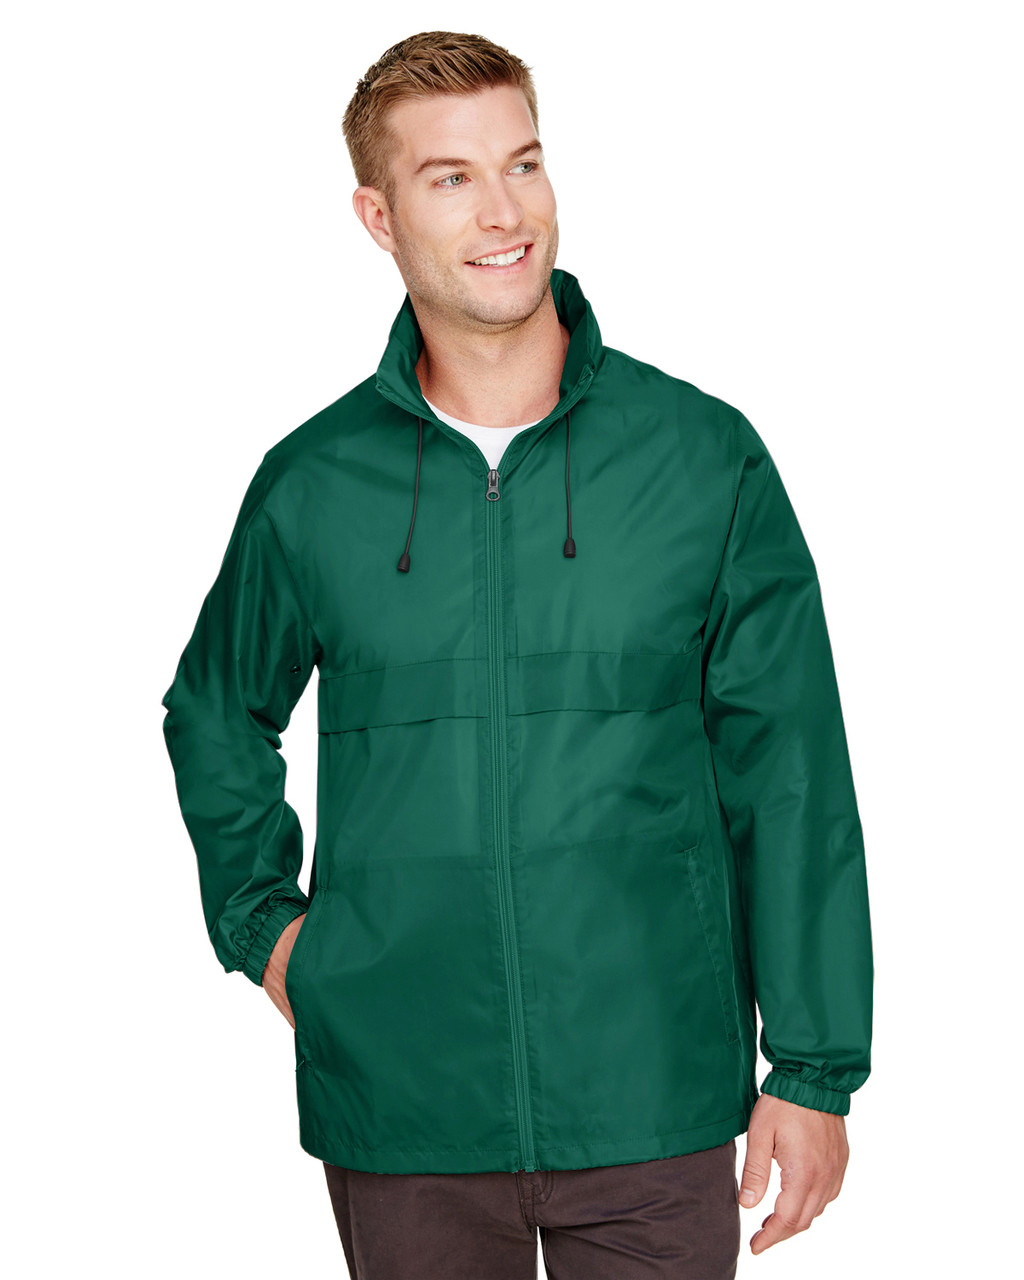 Sport Forest - TT73 Team 365 Adult Zone Protect Lightweight Jacket   BlankClothing.ca